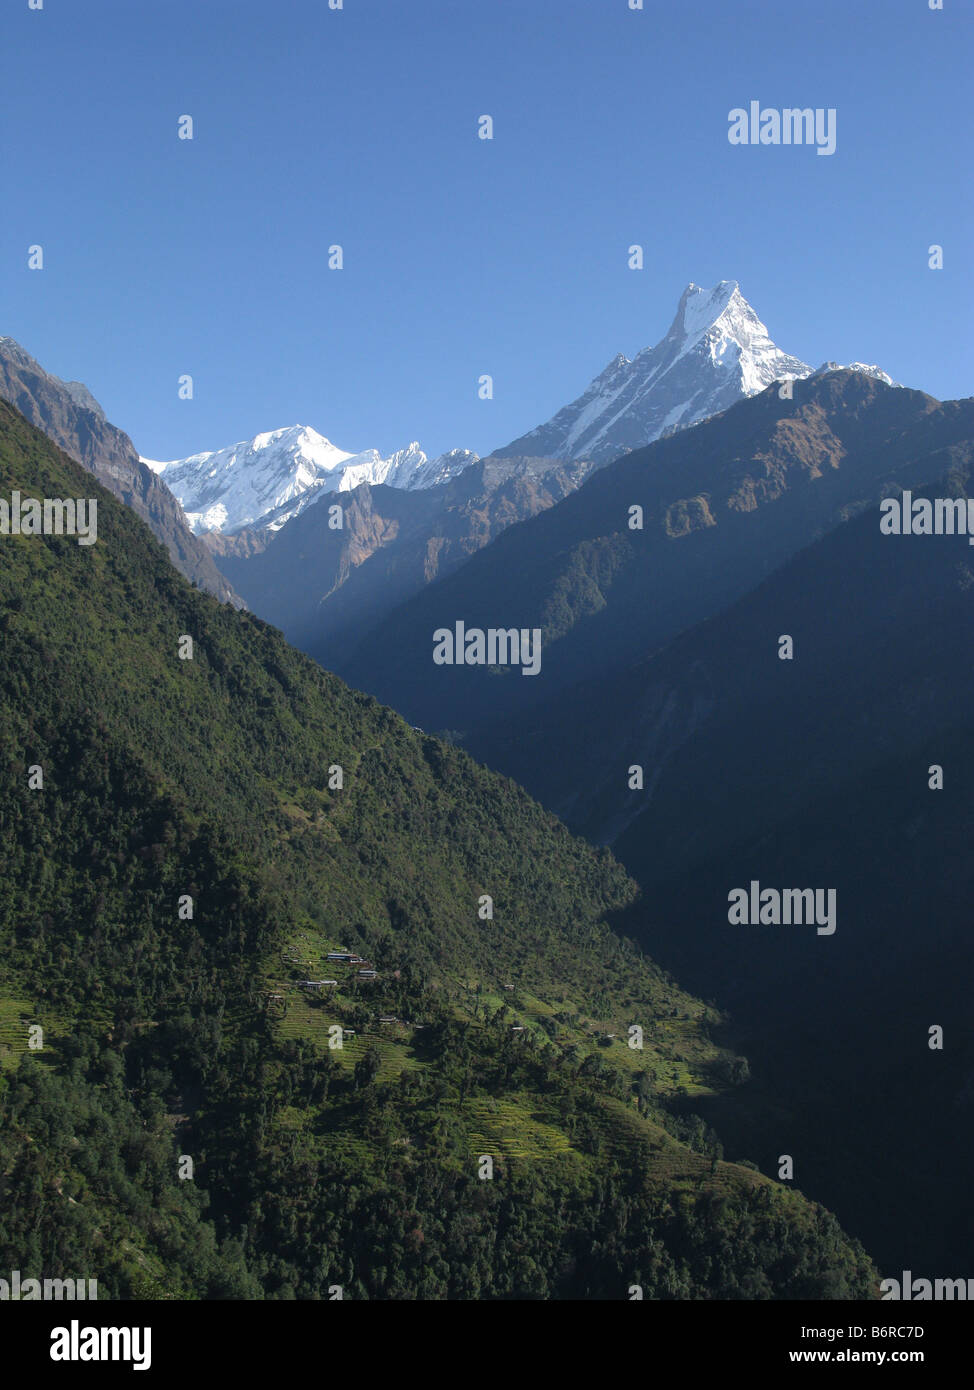 Machapuchare (Fishtail) mountain seen from Chhomrong, Annapurna foothills, Gandaki, Himalayas, Nepal, central Asia - Stock Image